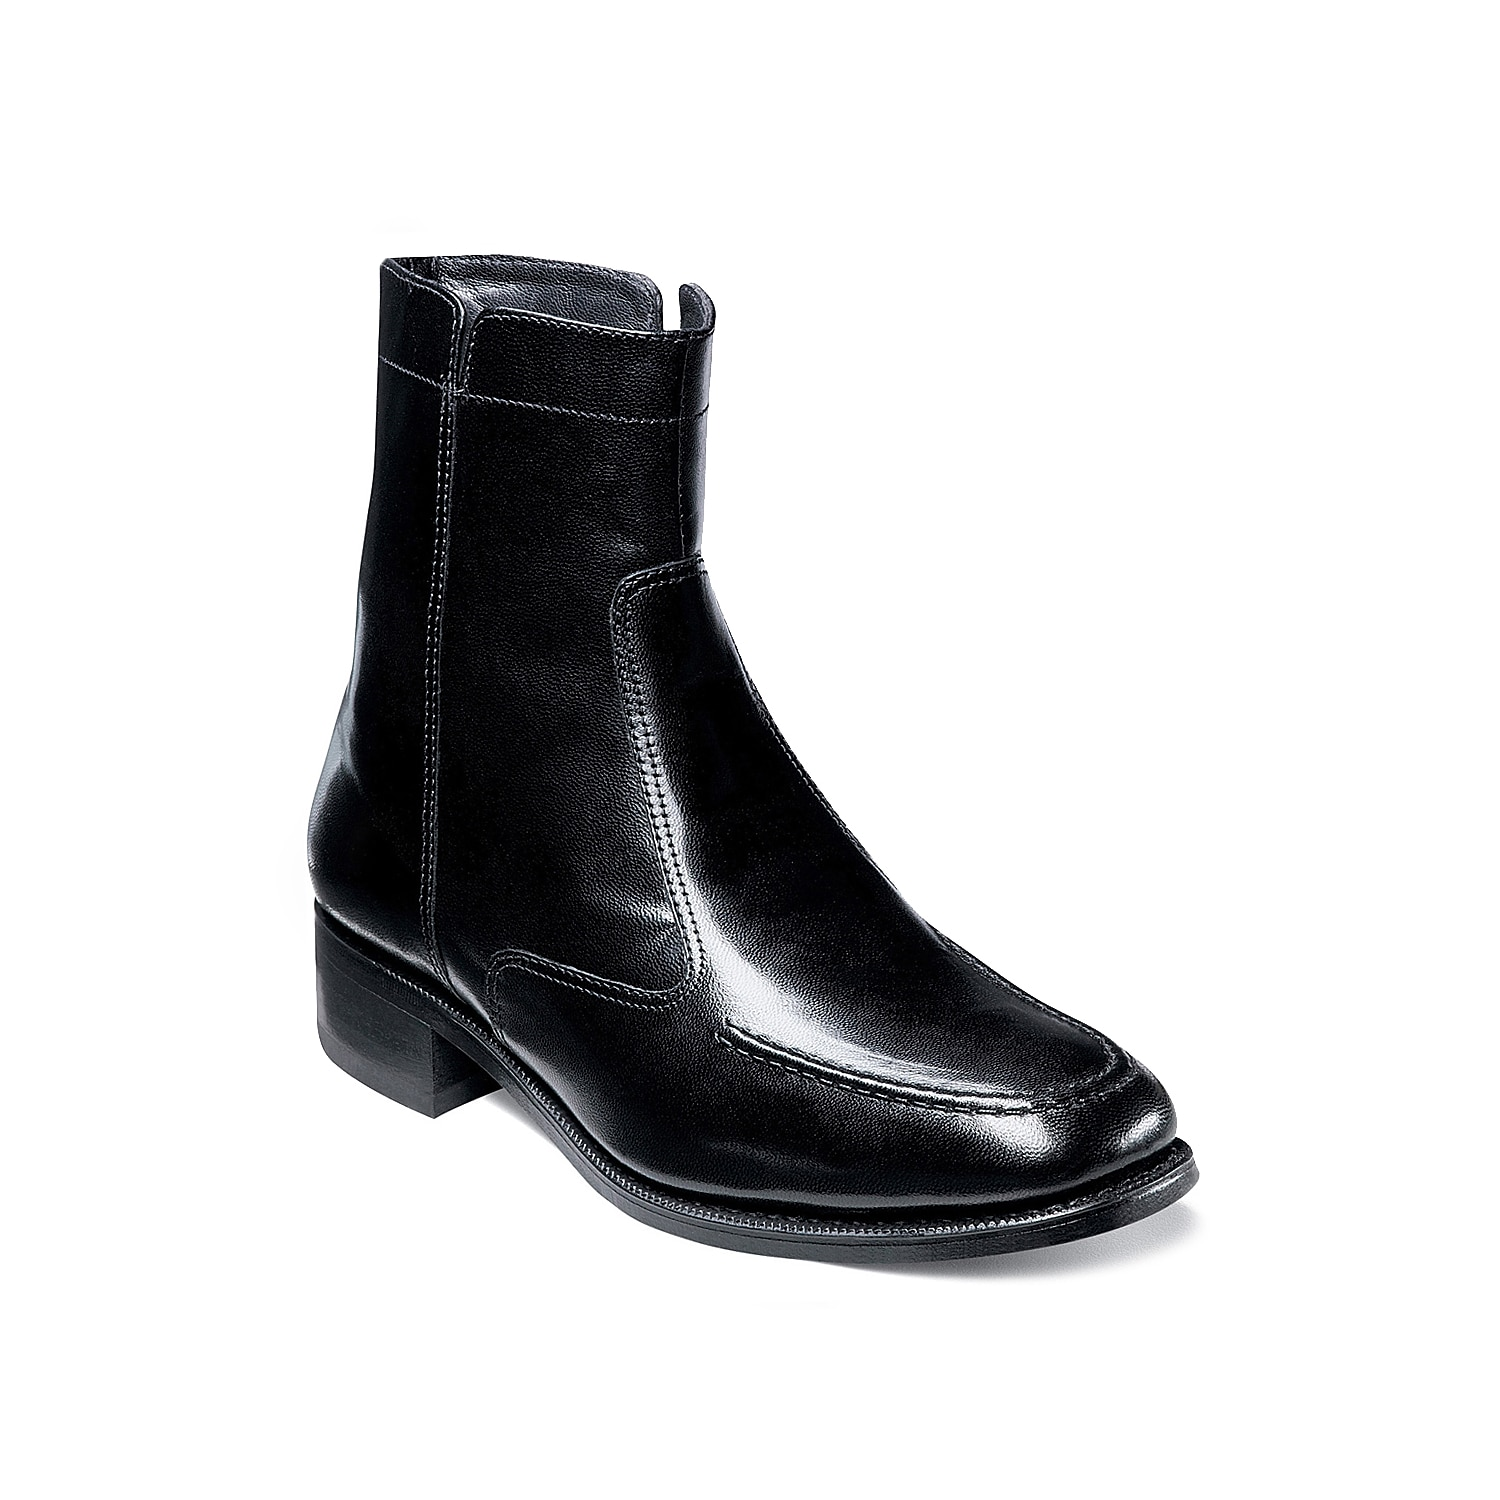 The Florsheim Essex ankle boot is a classic dress boot for gentlemen of every generation. It has a sleek and simple silhouette that will lift your look.